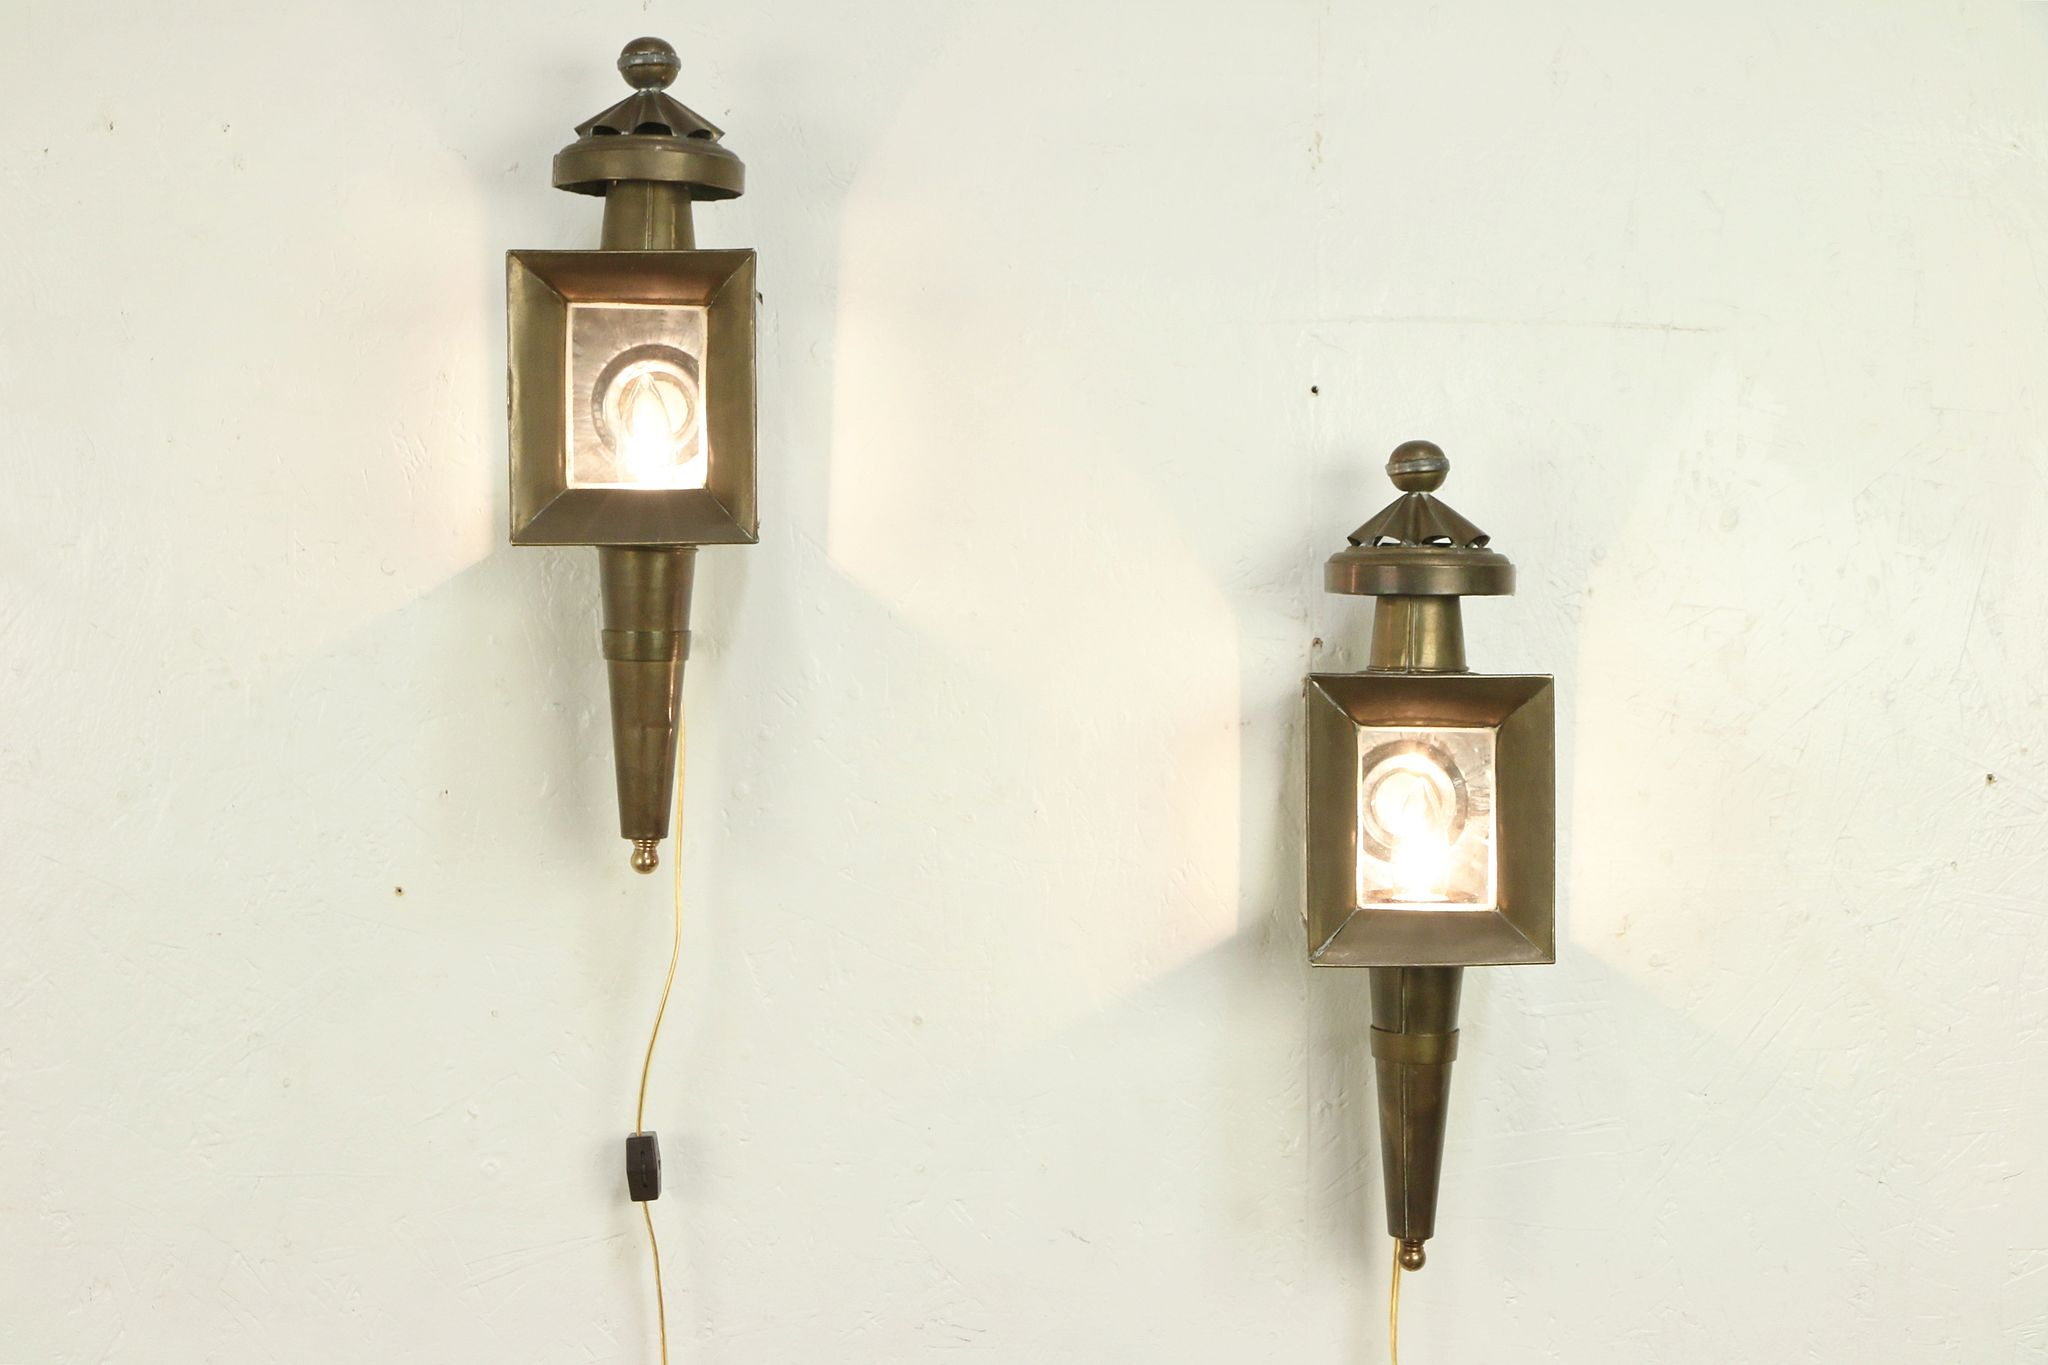 Sold Pair Of Brass Lights Vintage Carriage Lanterns Or Wall Sconce Lamps 29981 Harp Gallery Antiques Furniture